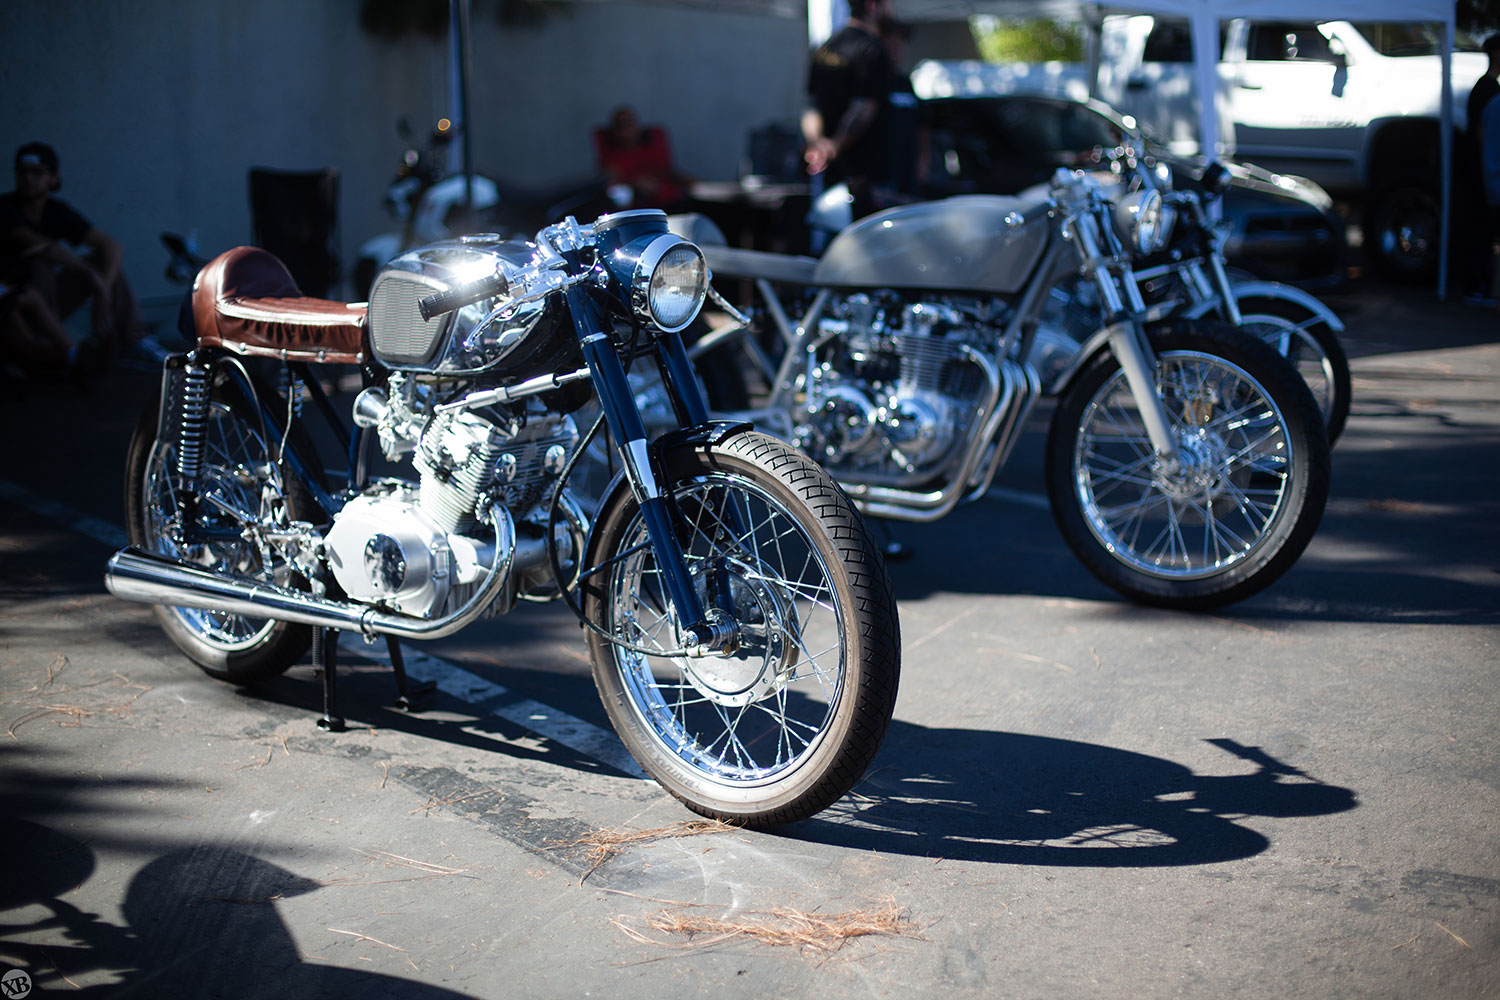 Alchemy Motorcycles had a great showing of their custom bike builds.